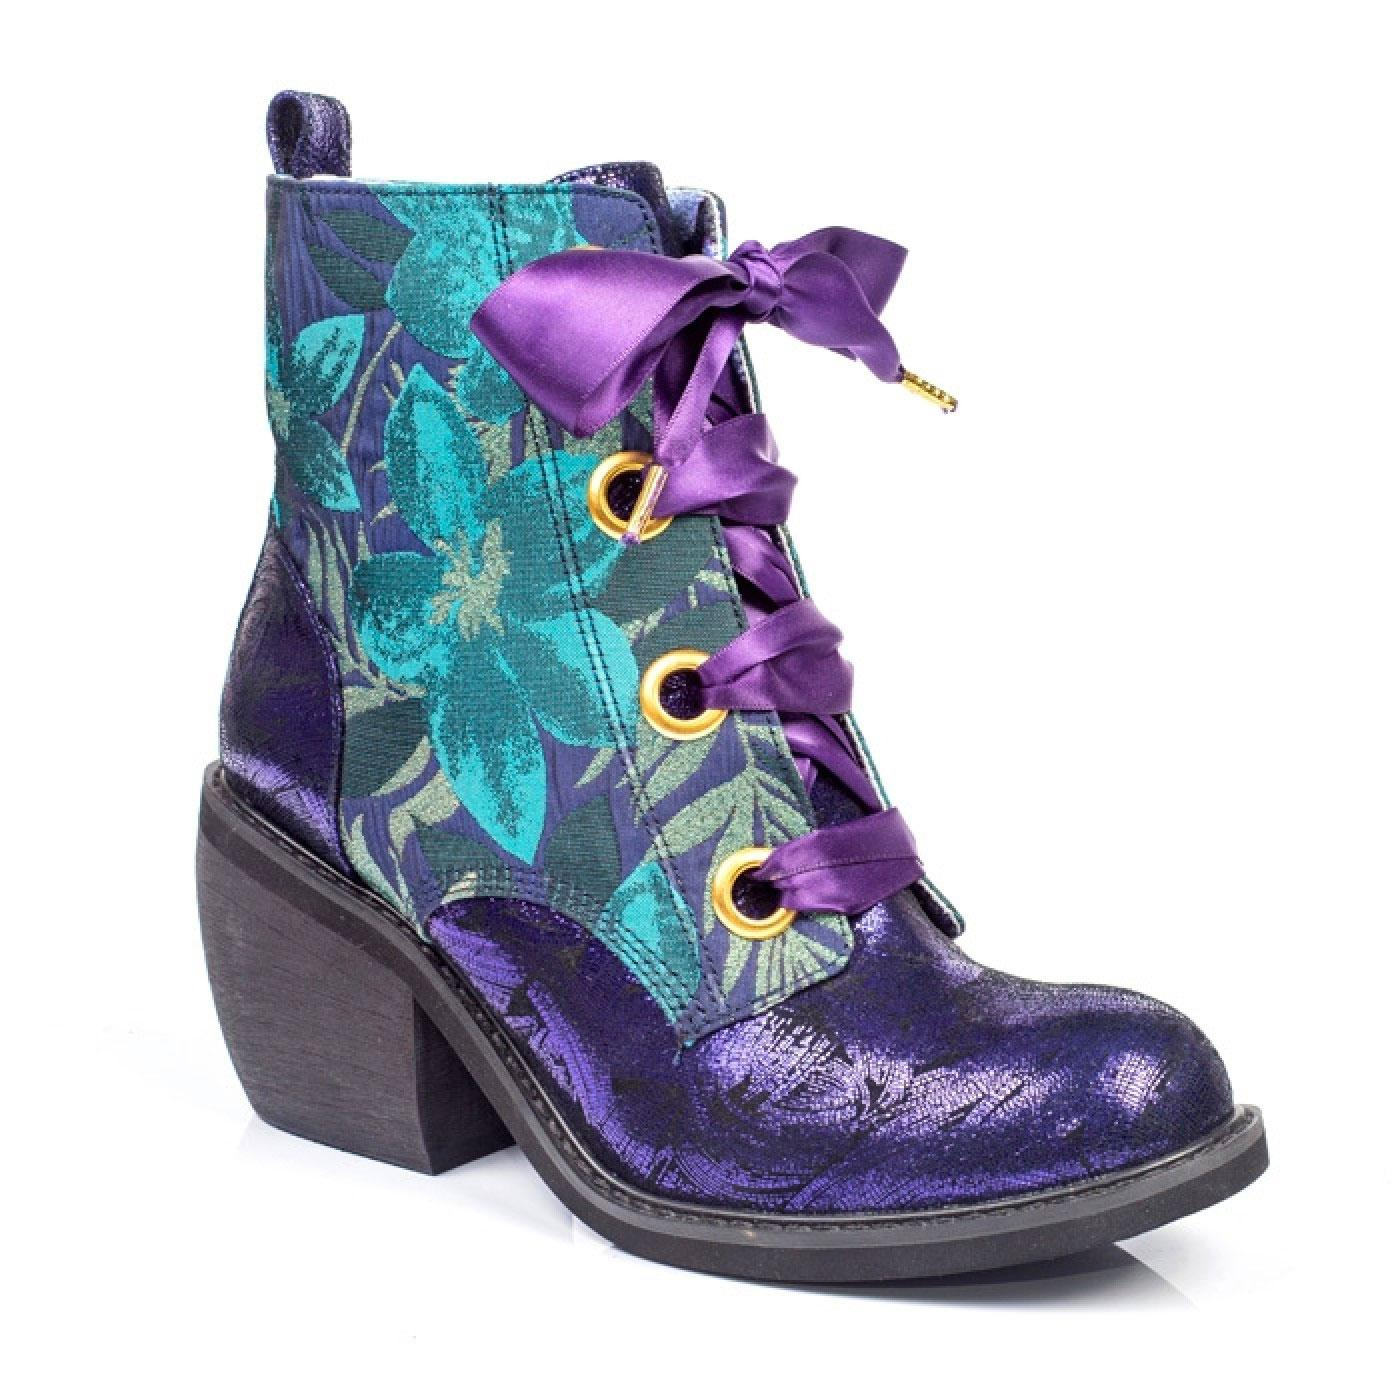 Quick Getaway IRREGULAR CHOICE Vintage Boots V